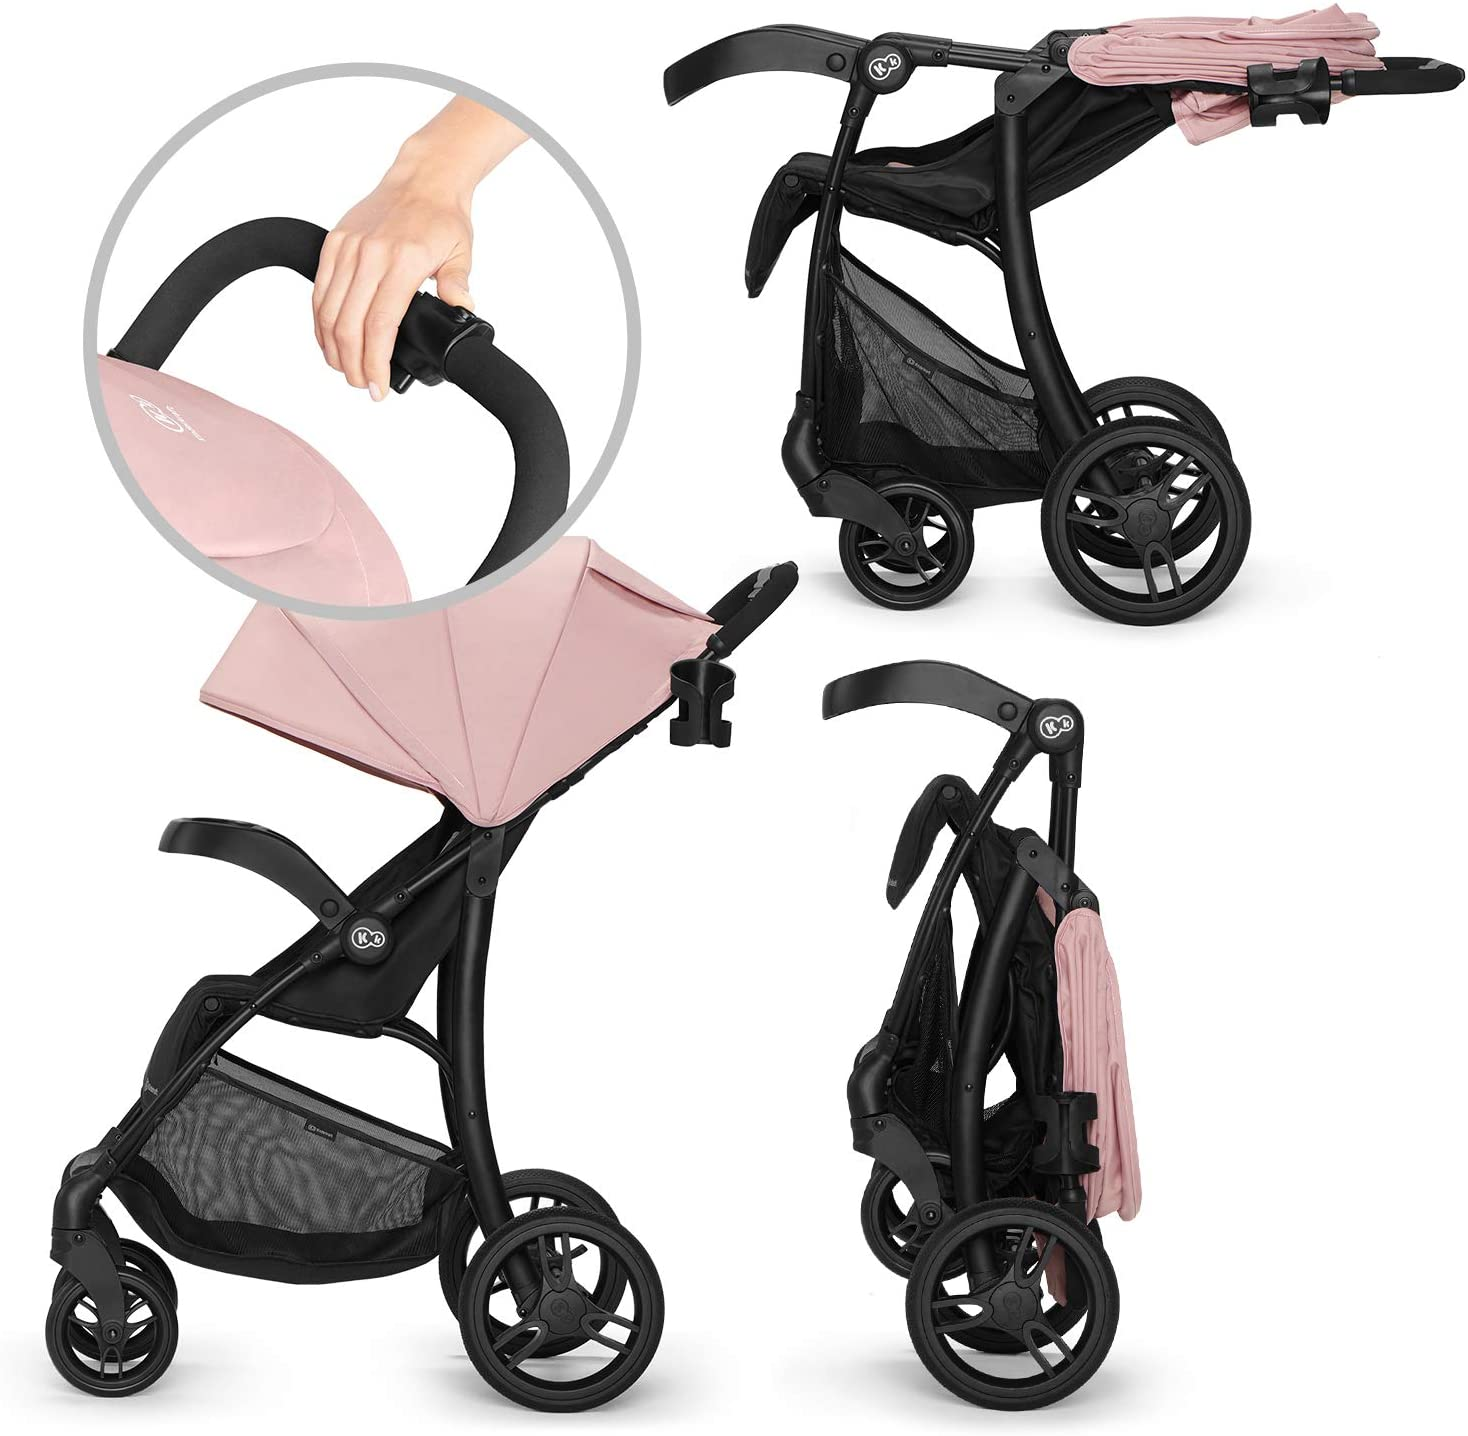 Kinderkraft Poussette Canne CRUISER Rose Pliable L/ég/ère Suspension 4 Roues